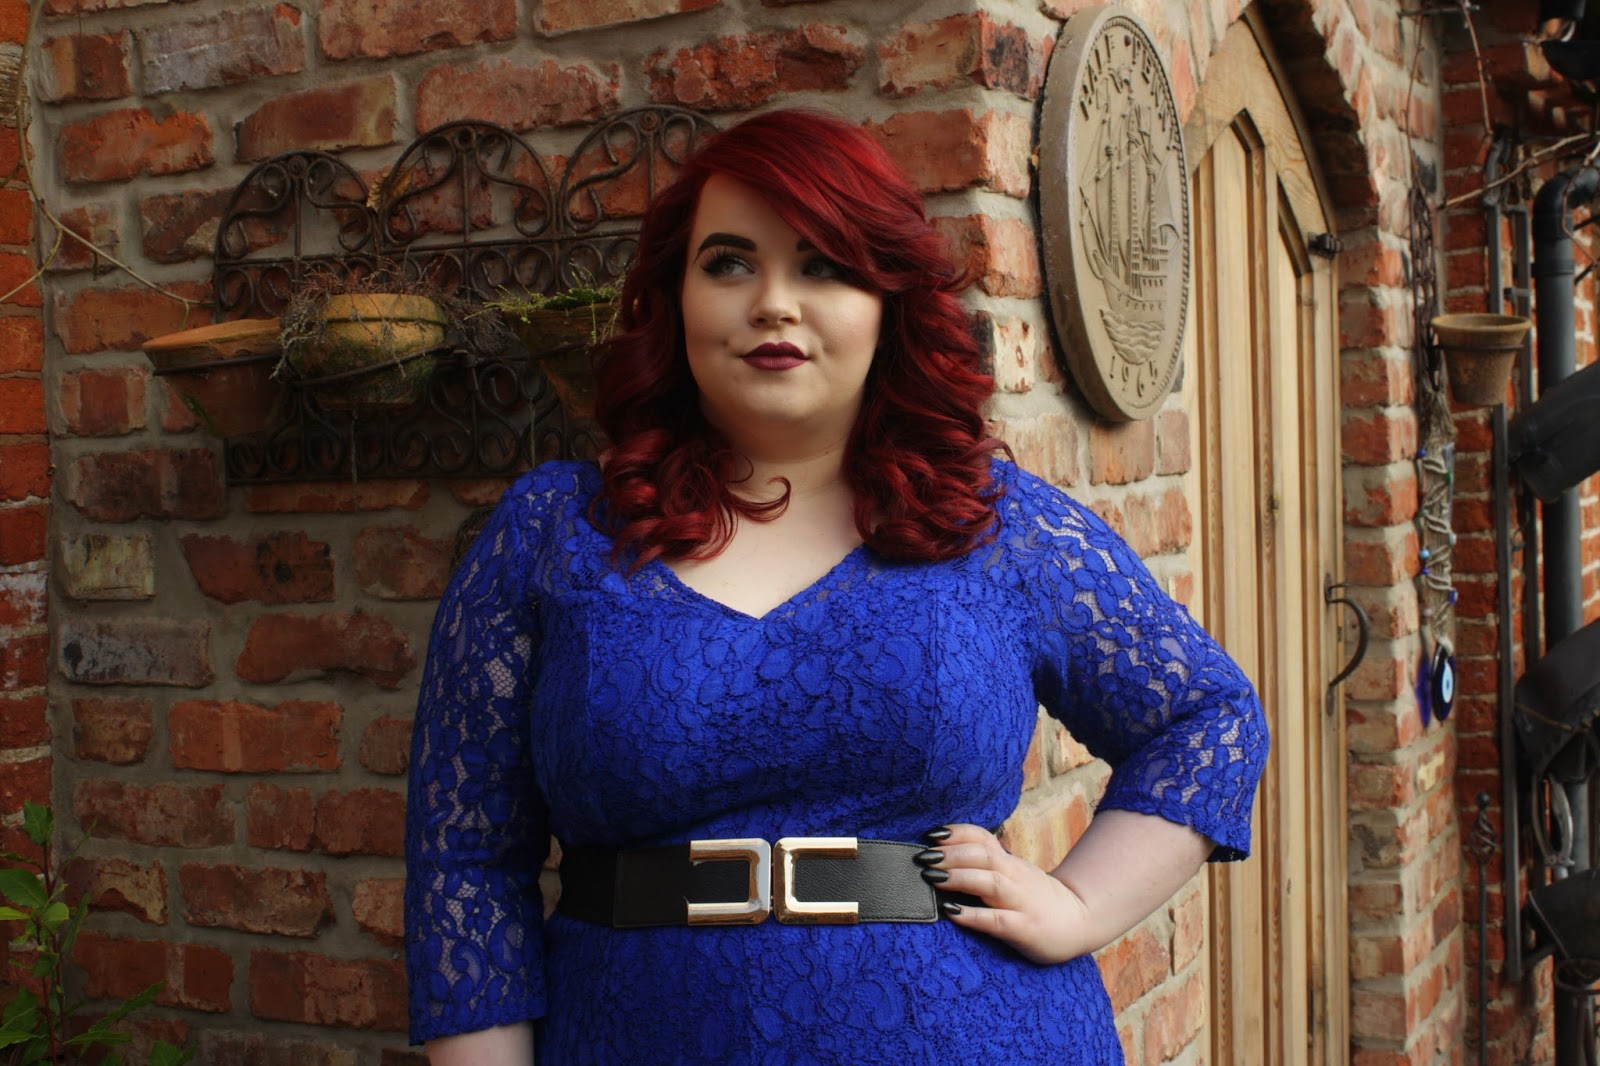 George at Asda Blue Lace Dress, georgina grogan, plus size blogger, fashion blogger